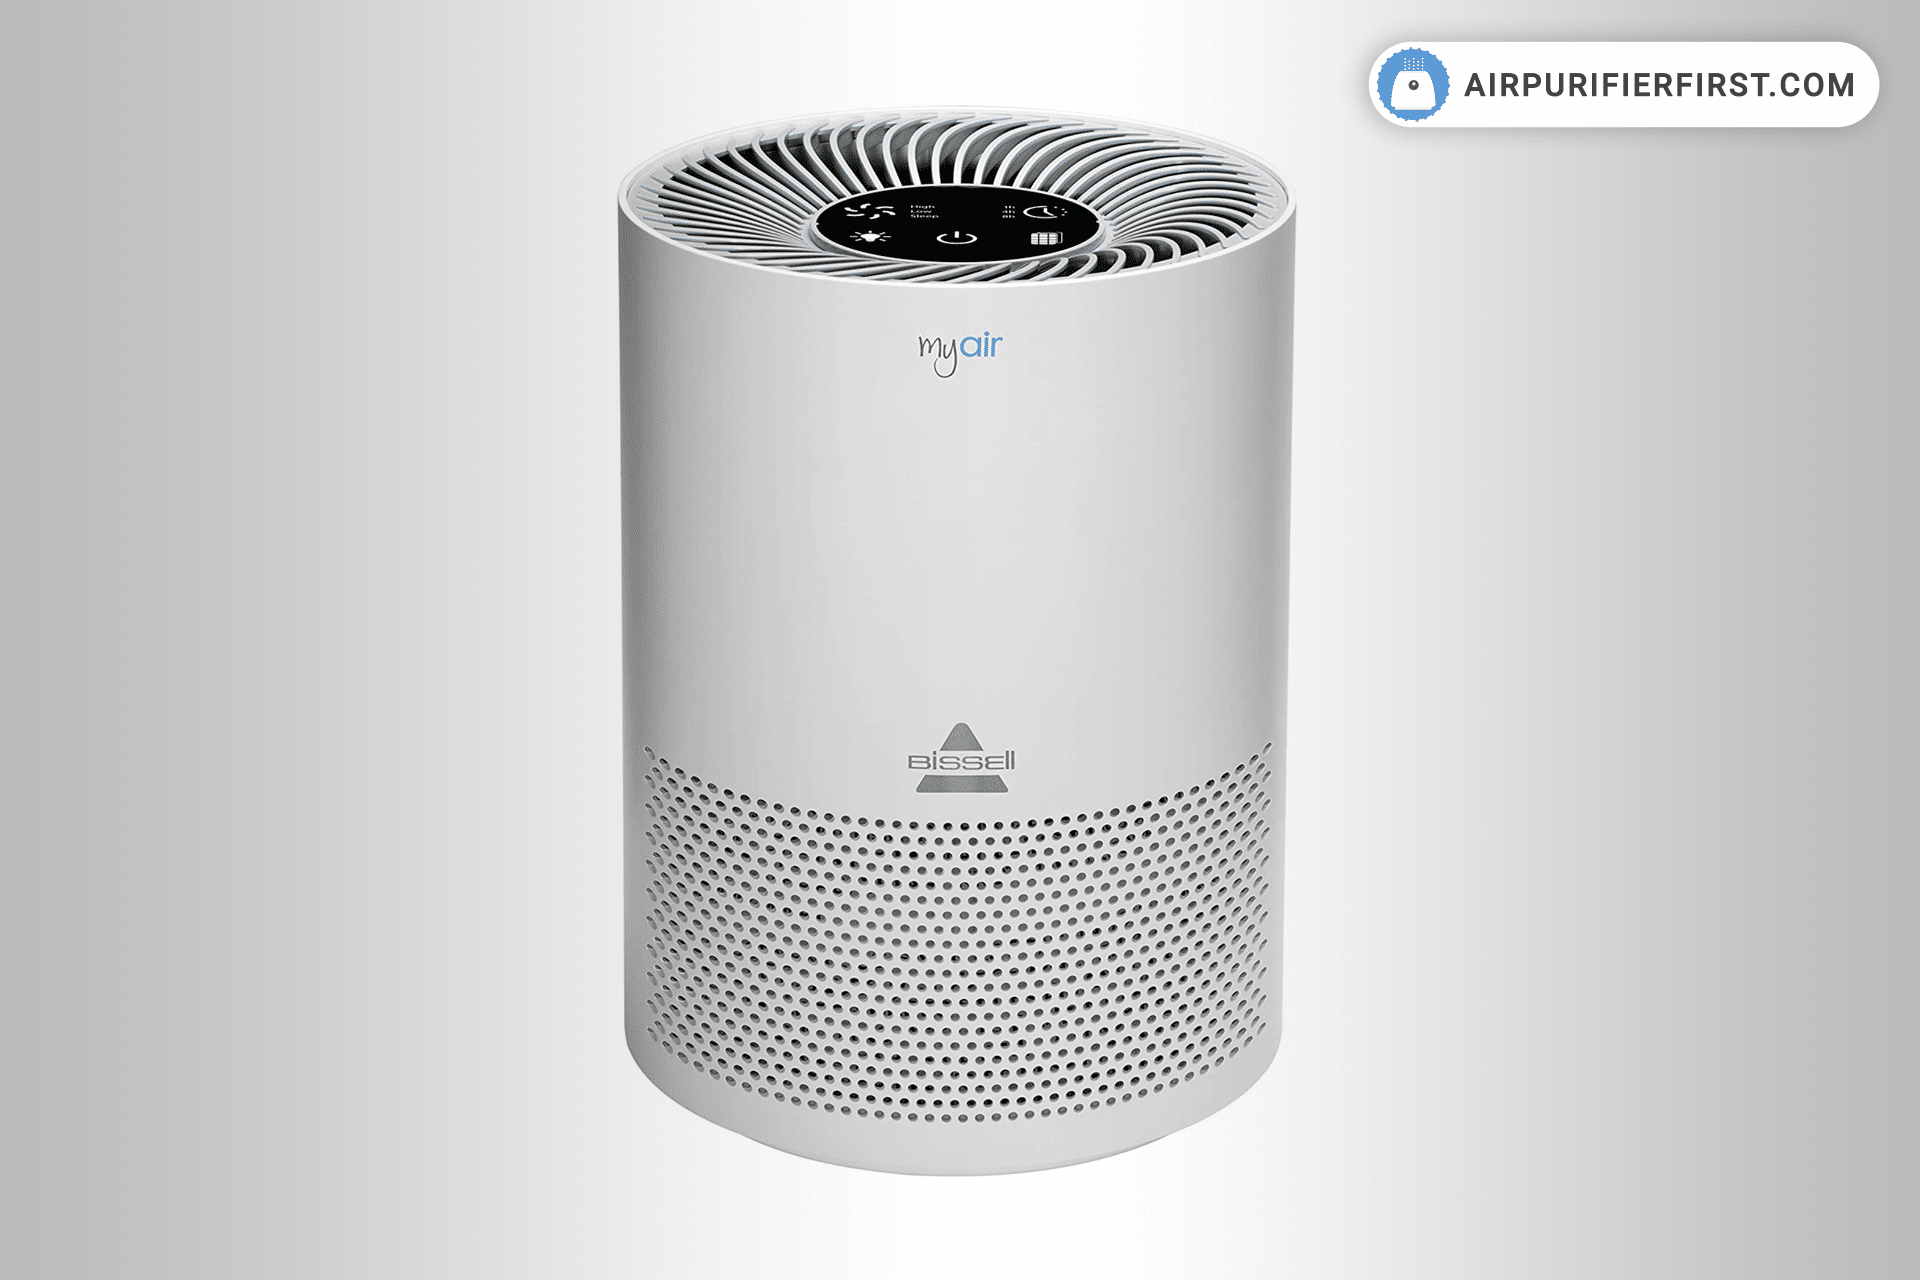 Bissell MyAir - Best Affordable Air Purifier